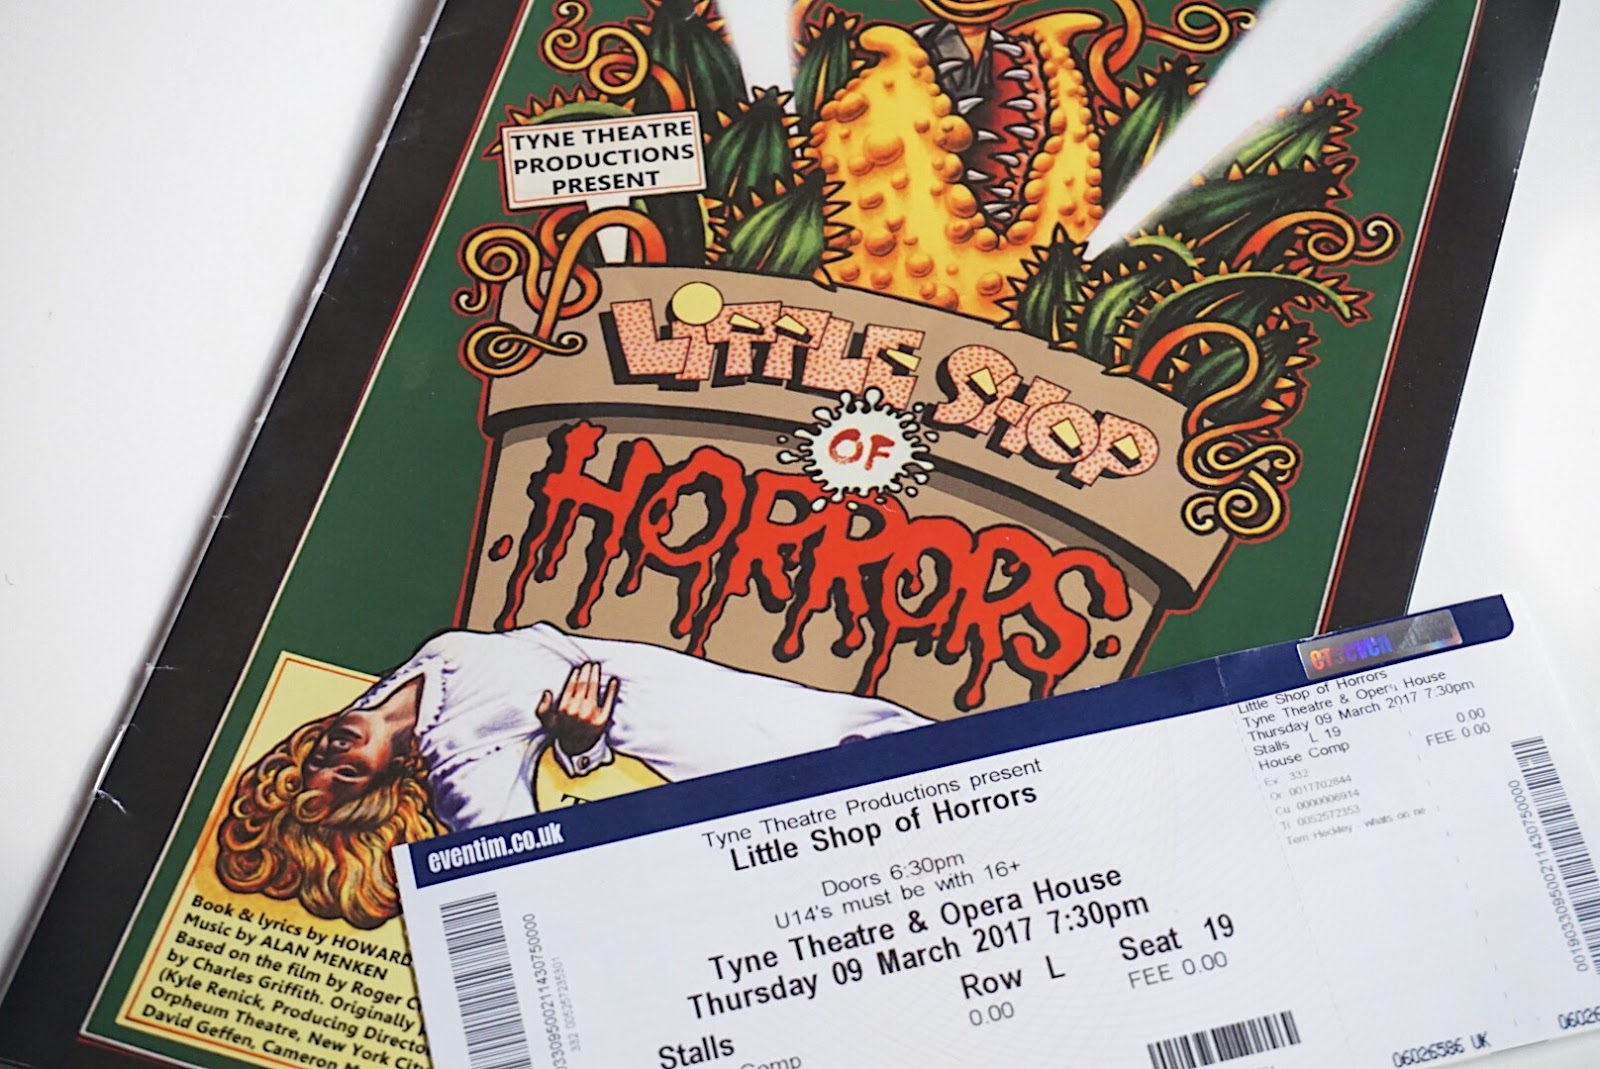 Little Shop of Horrors Tyne Theatre